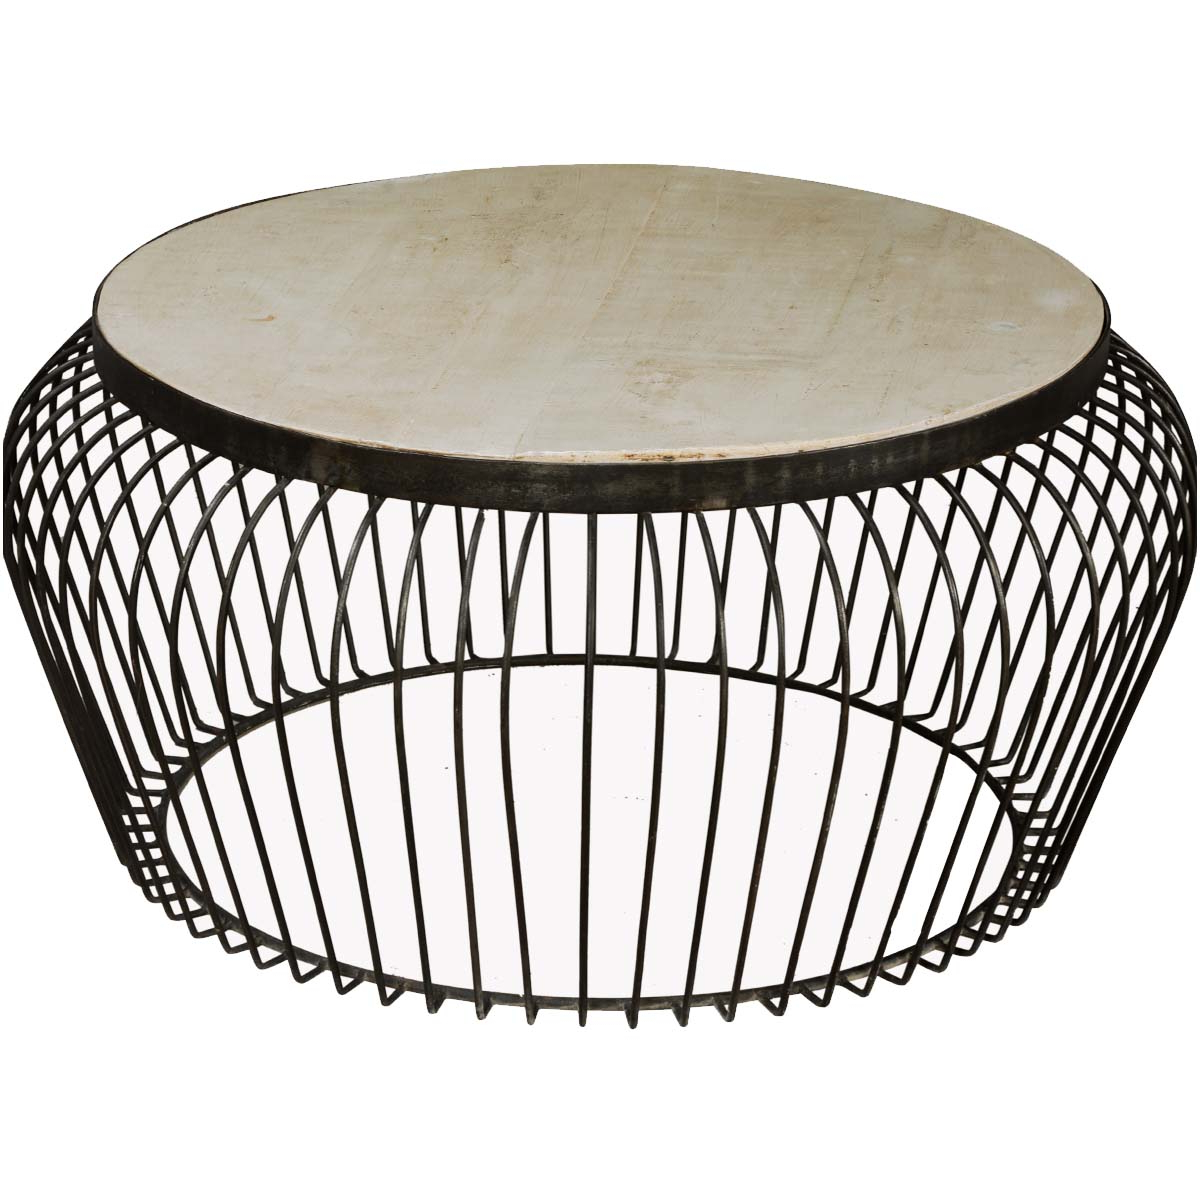 "Swell Round Coffee Tables Intended For Most Popular Wire Basket Mango Wood & Iron 38"" Round Coffee Table (Gallery 12 of 20)"